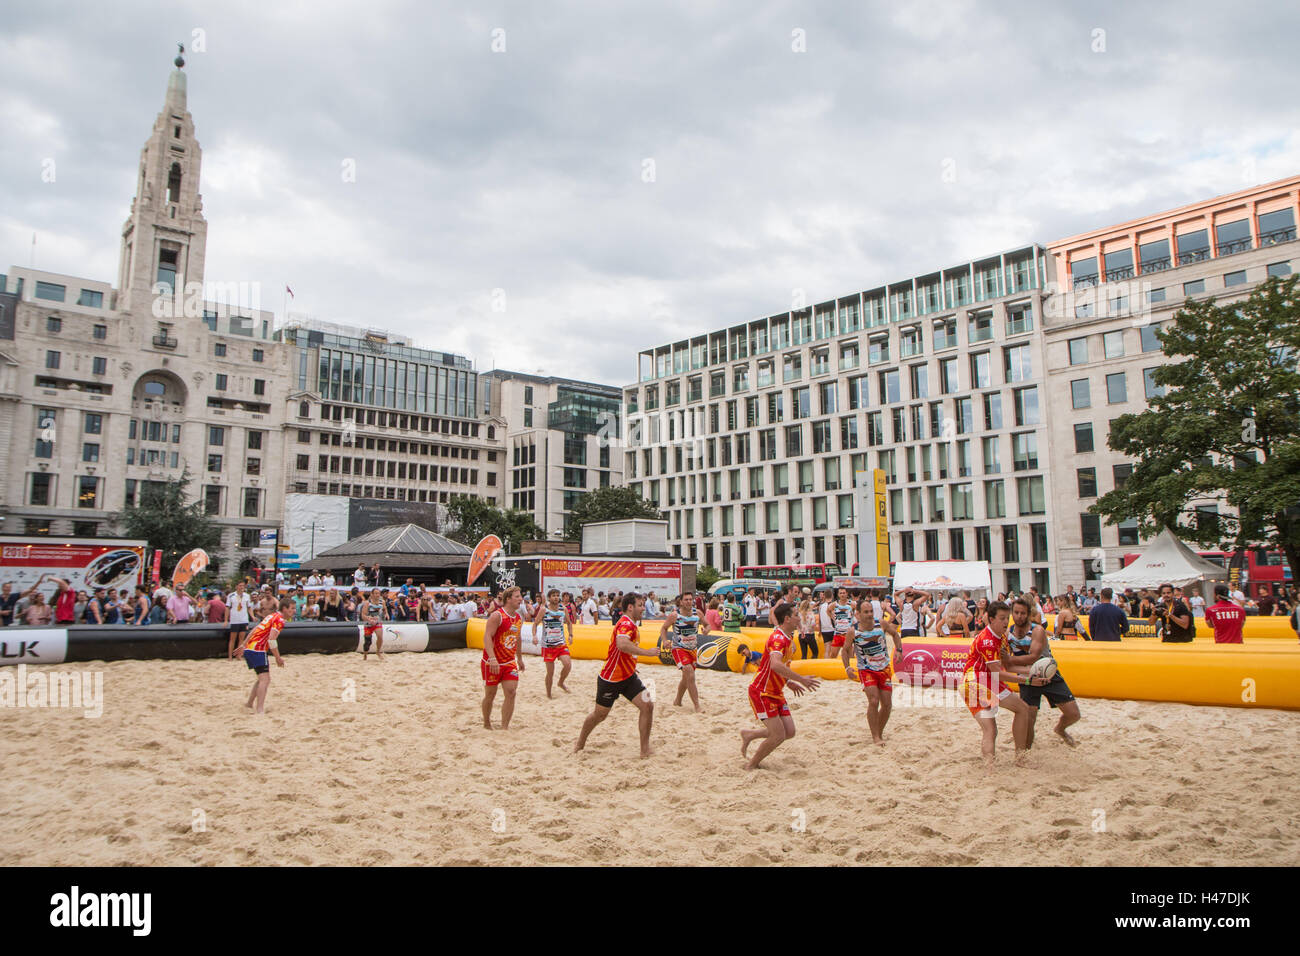 London Beach Rugby Tournament 2016 -Finsbury Square - Stock Image